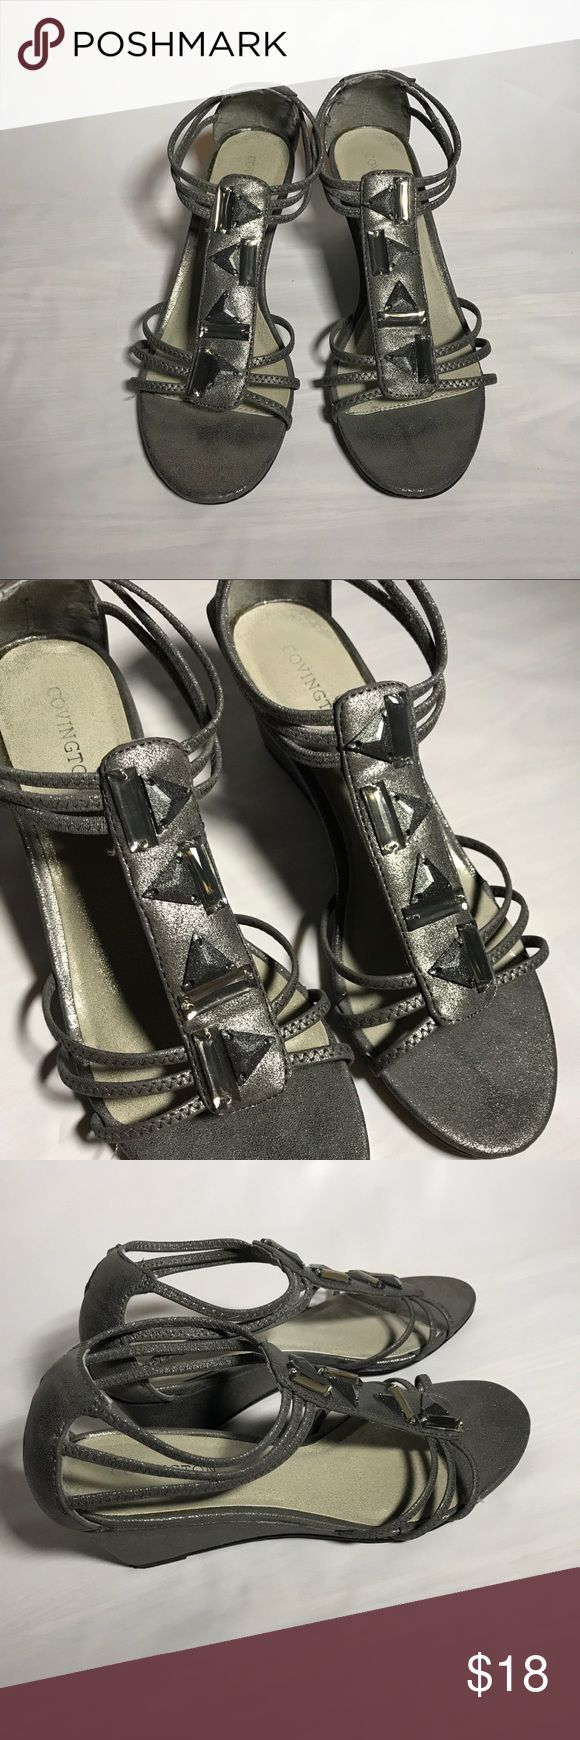 Covington Daisy Wedge Heel Used condition. Has small gray marks on the sole of the left shoe. Accented with triangle and rectangle shapes on the front of each shoe. Gray tone shoe. Bottom of shoes demonstrate usage. Covington name on soles have fading. Covington Shoes Wedges